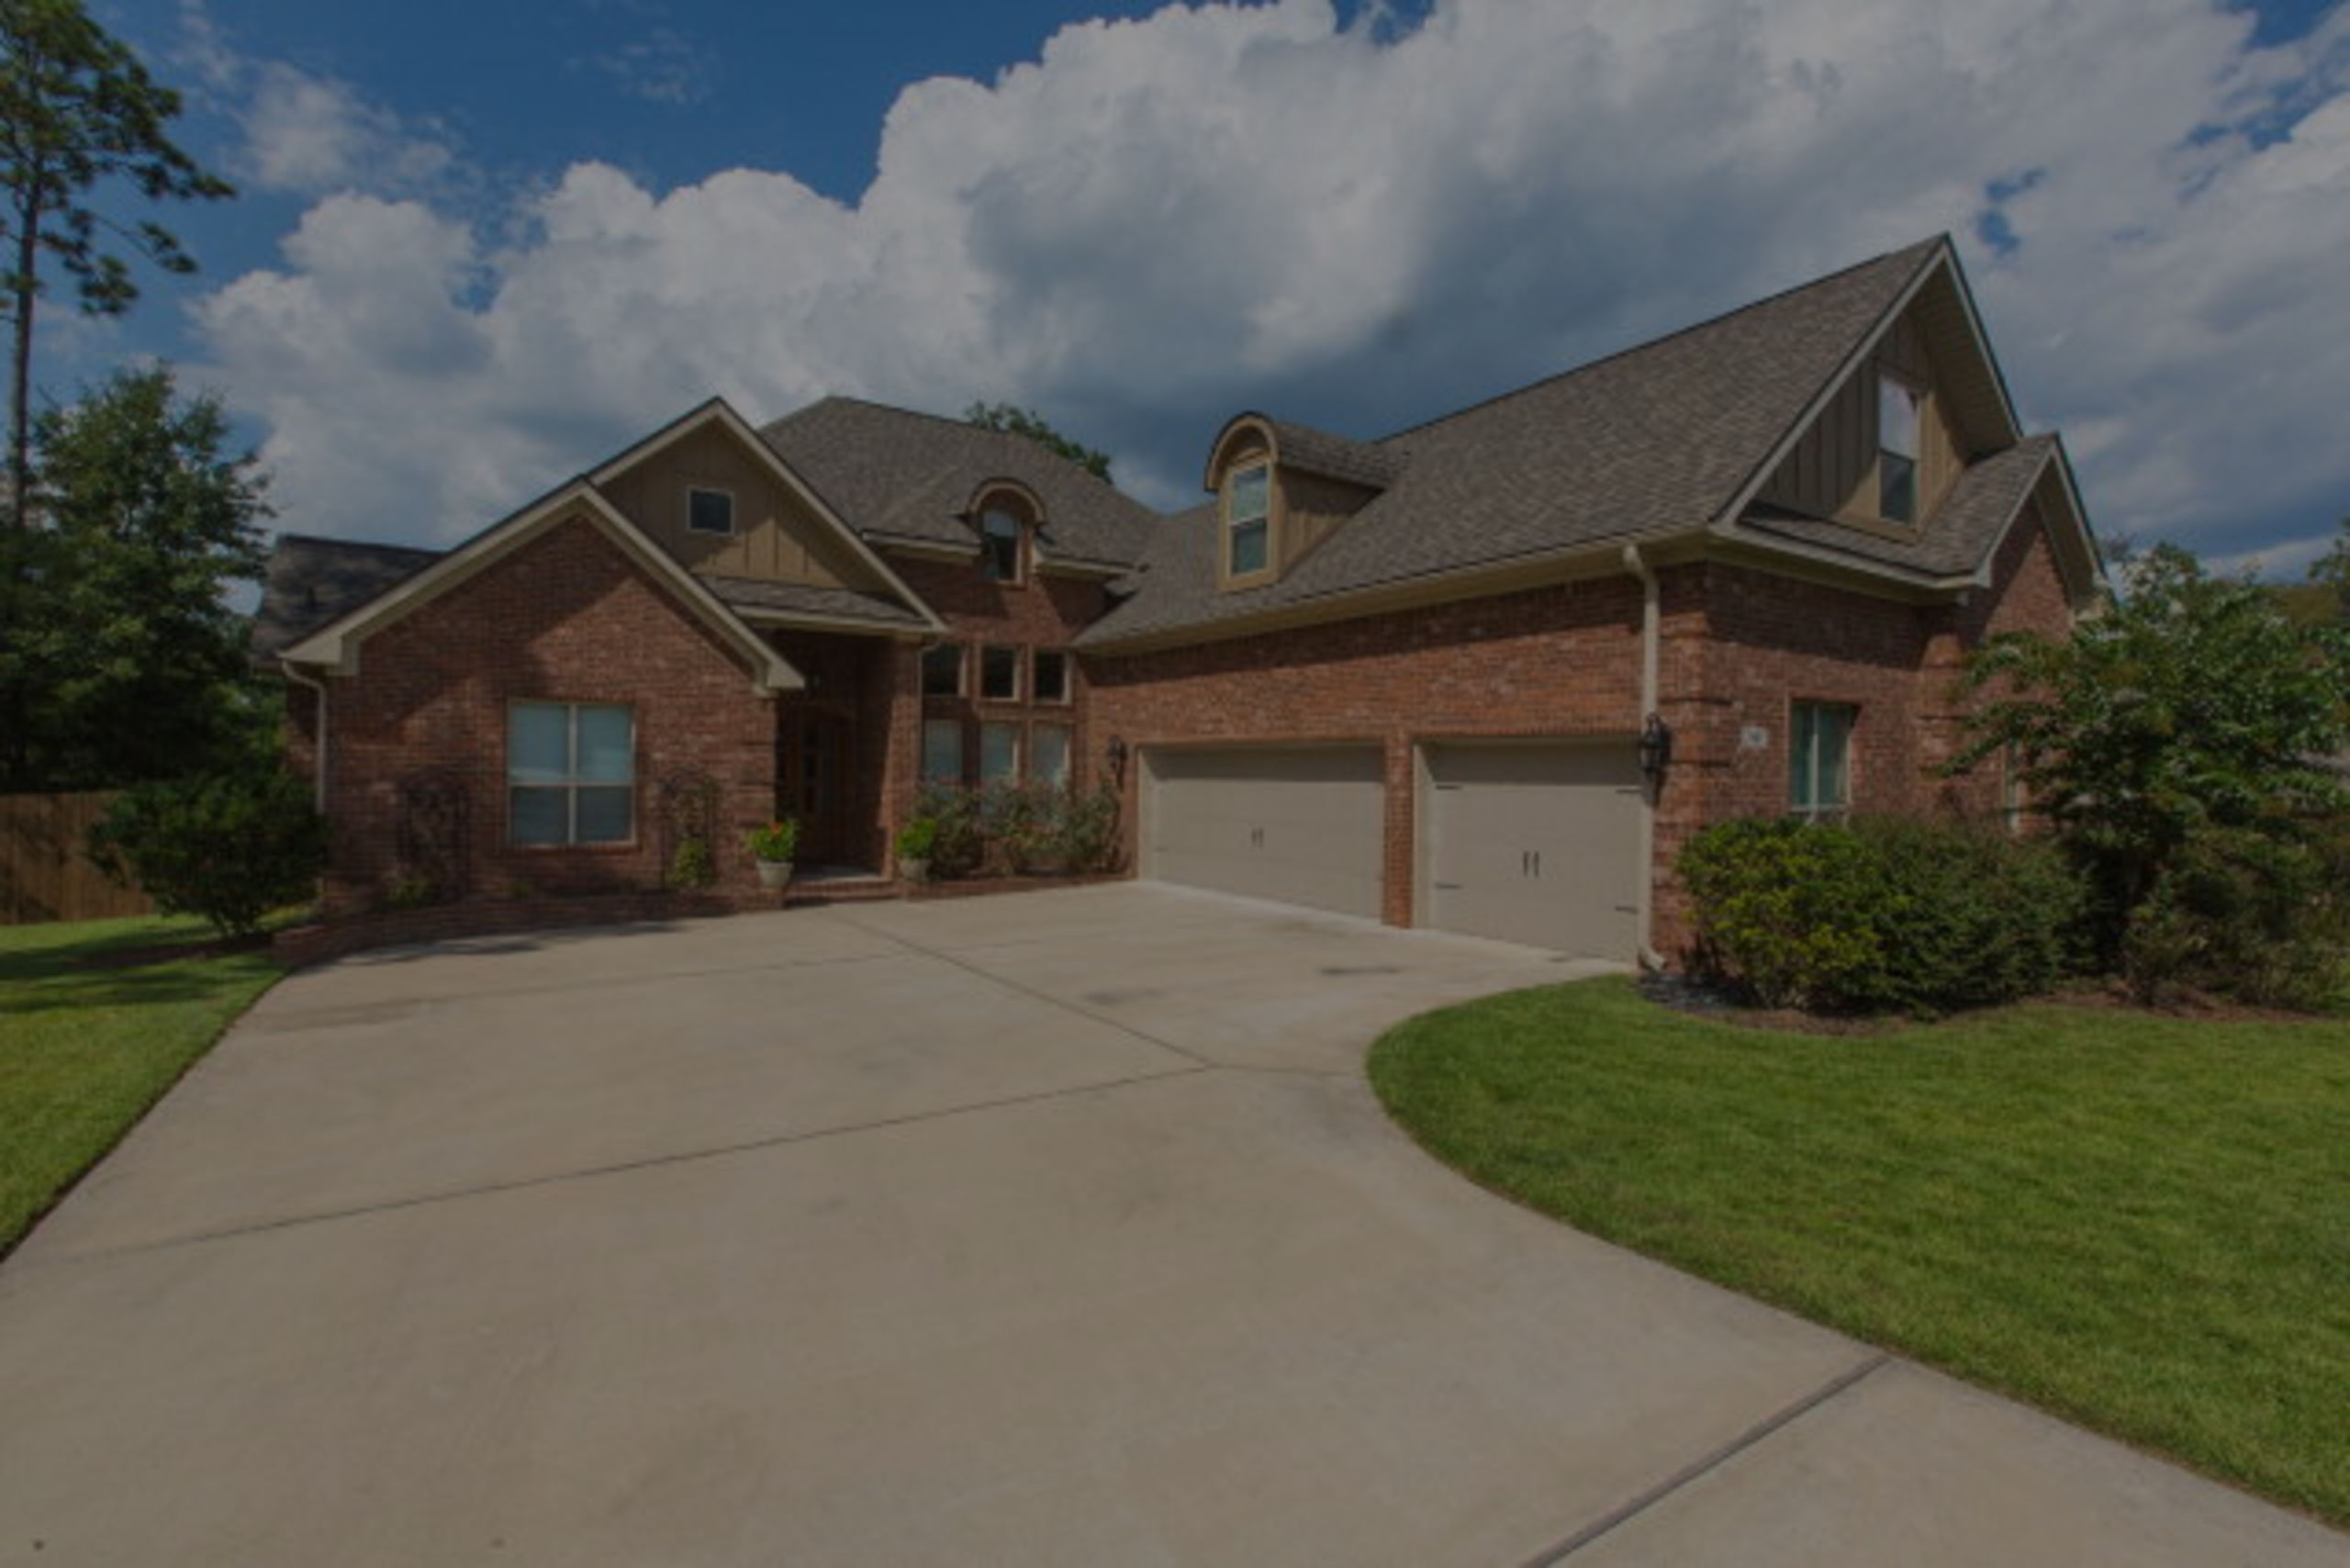 Featured Neighborhood – Blakeley Forest of Spanish Fort